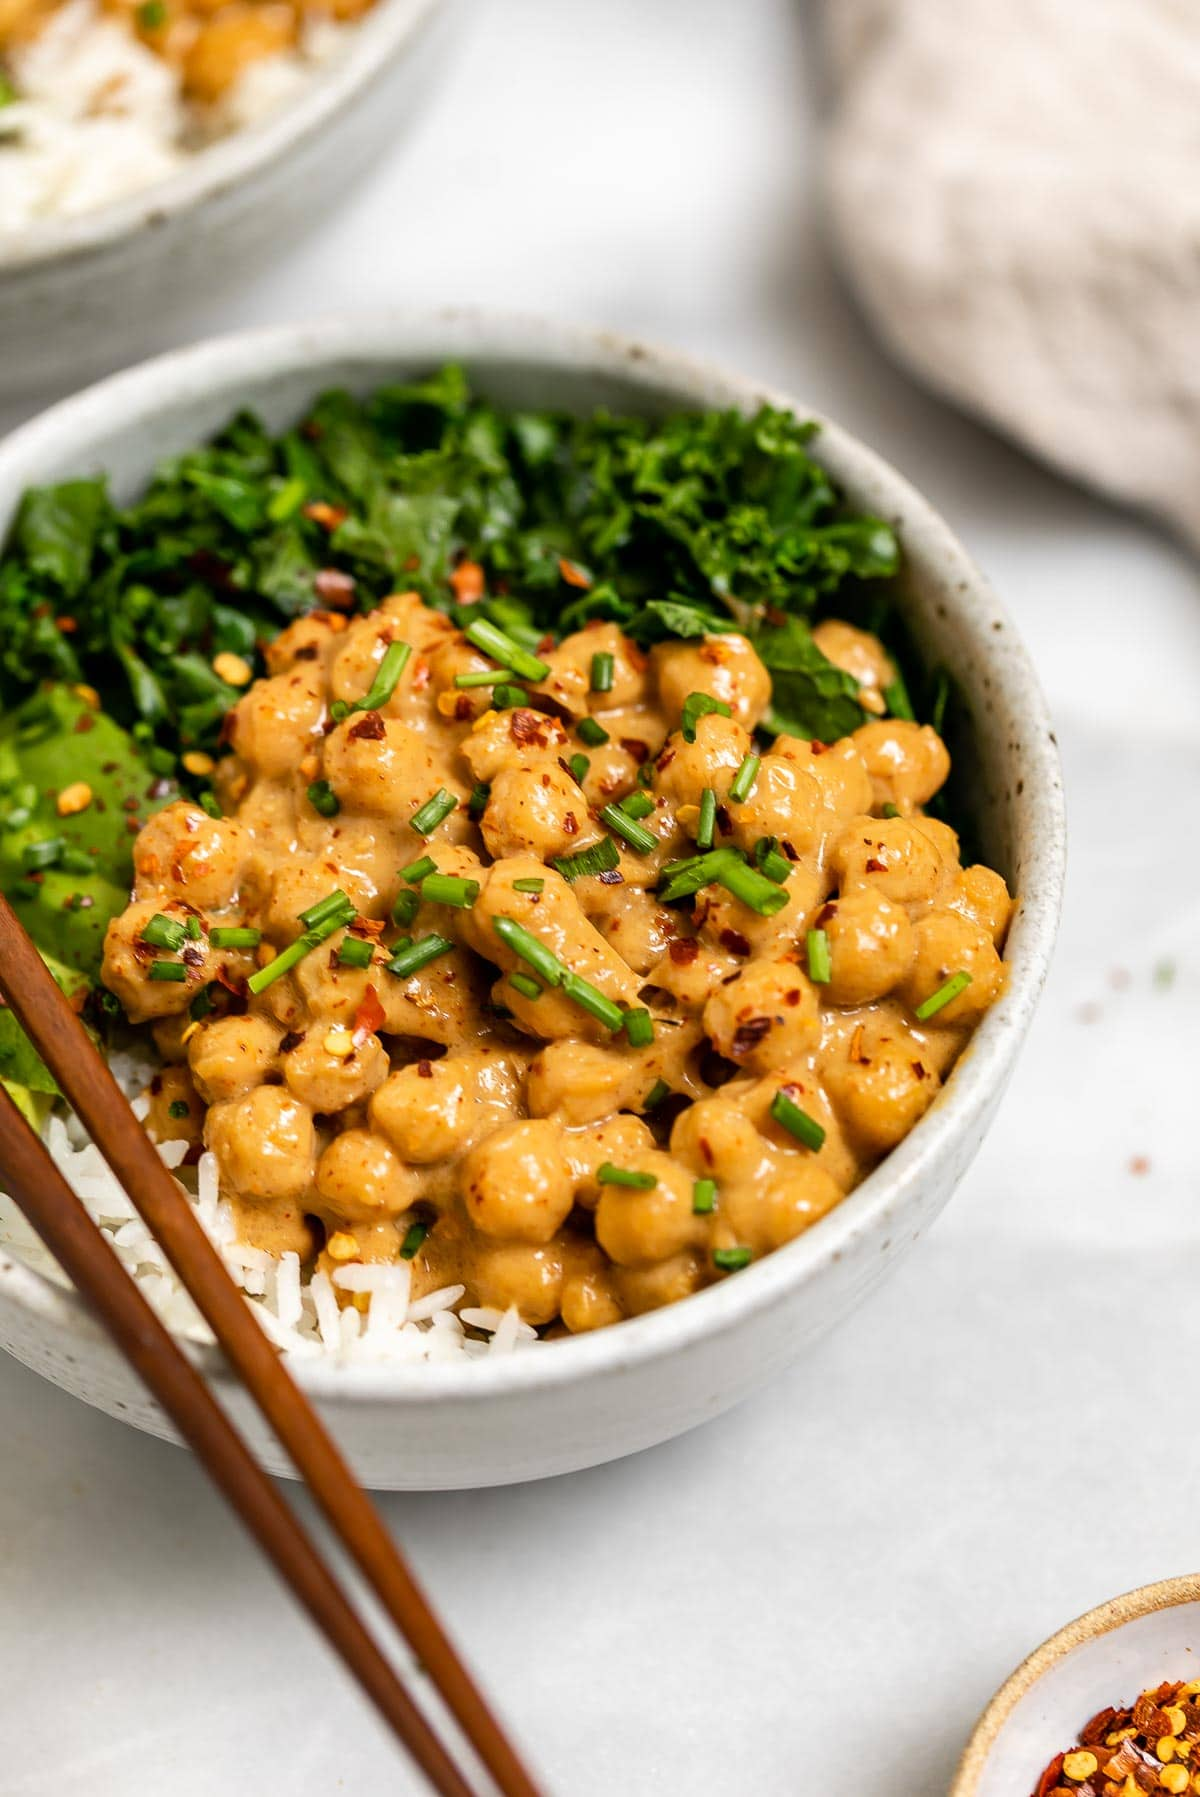 Peanut butter chickpeas with kale, rice and avocado.